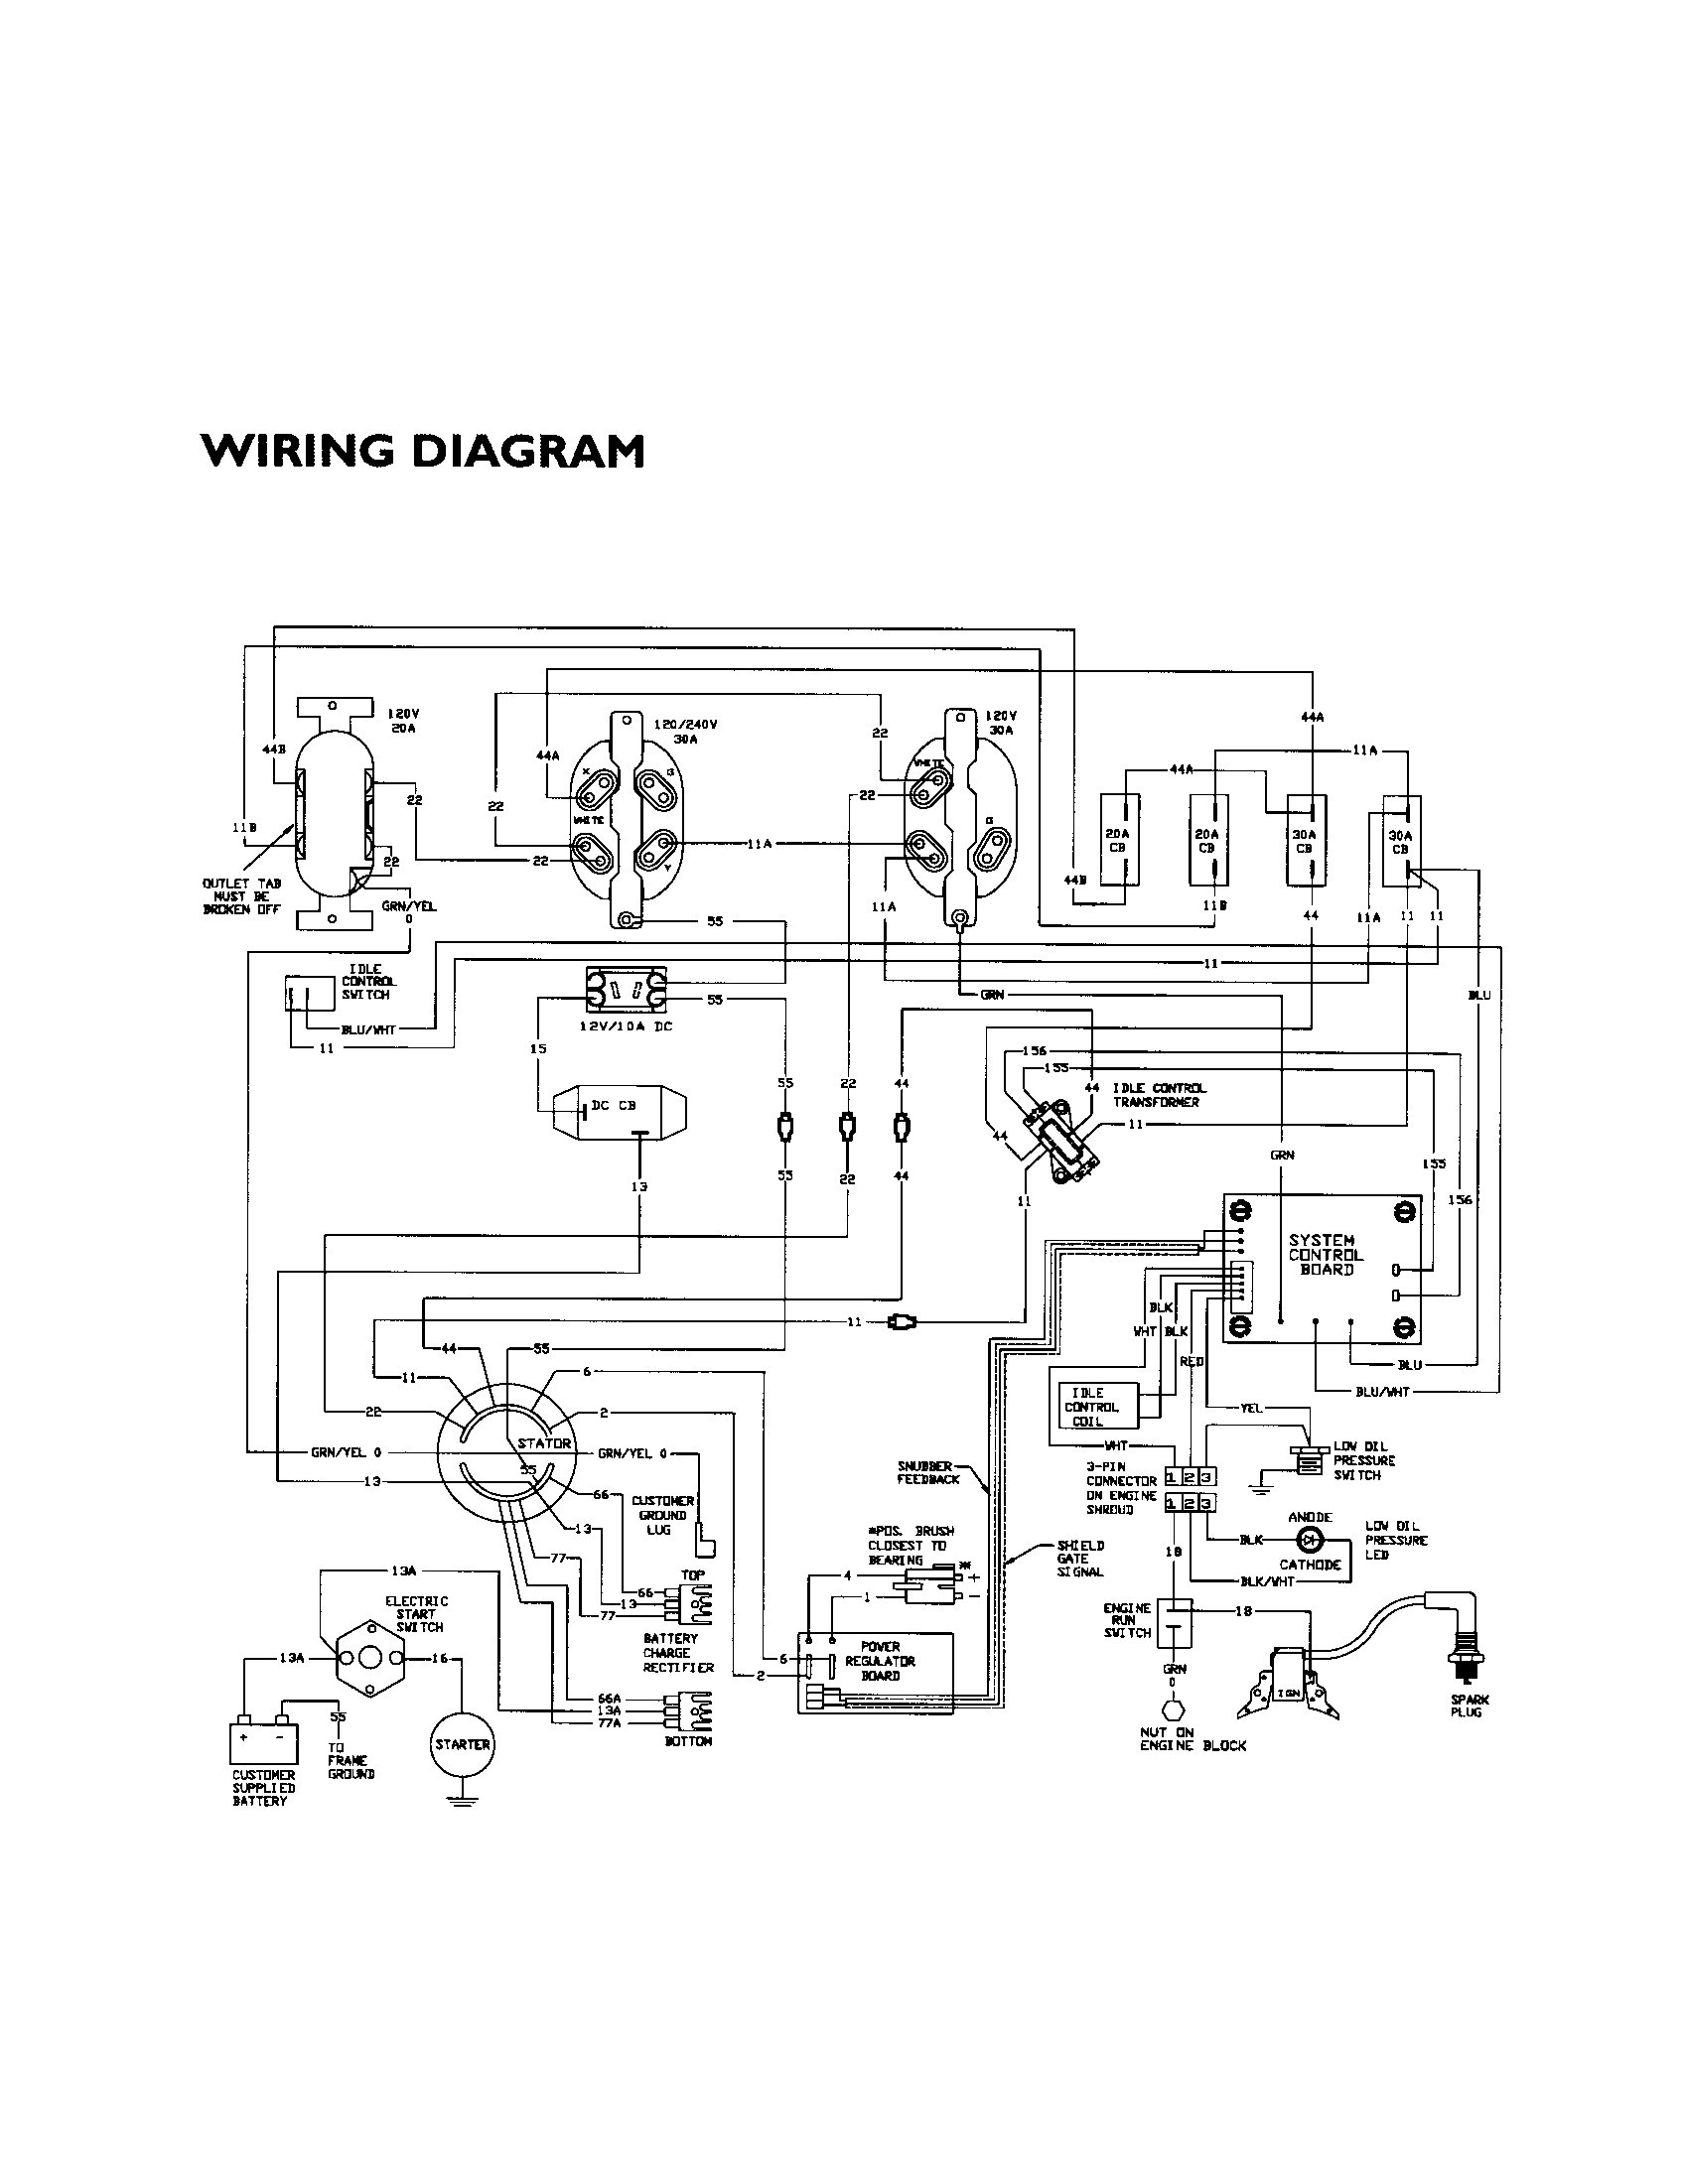 briggs and stratton generator wiring diagram generac wiring harness wiring diagrams all  generac wiring harness wiring